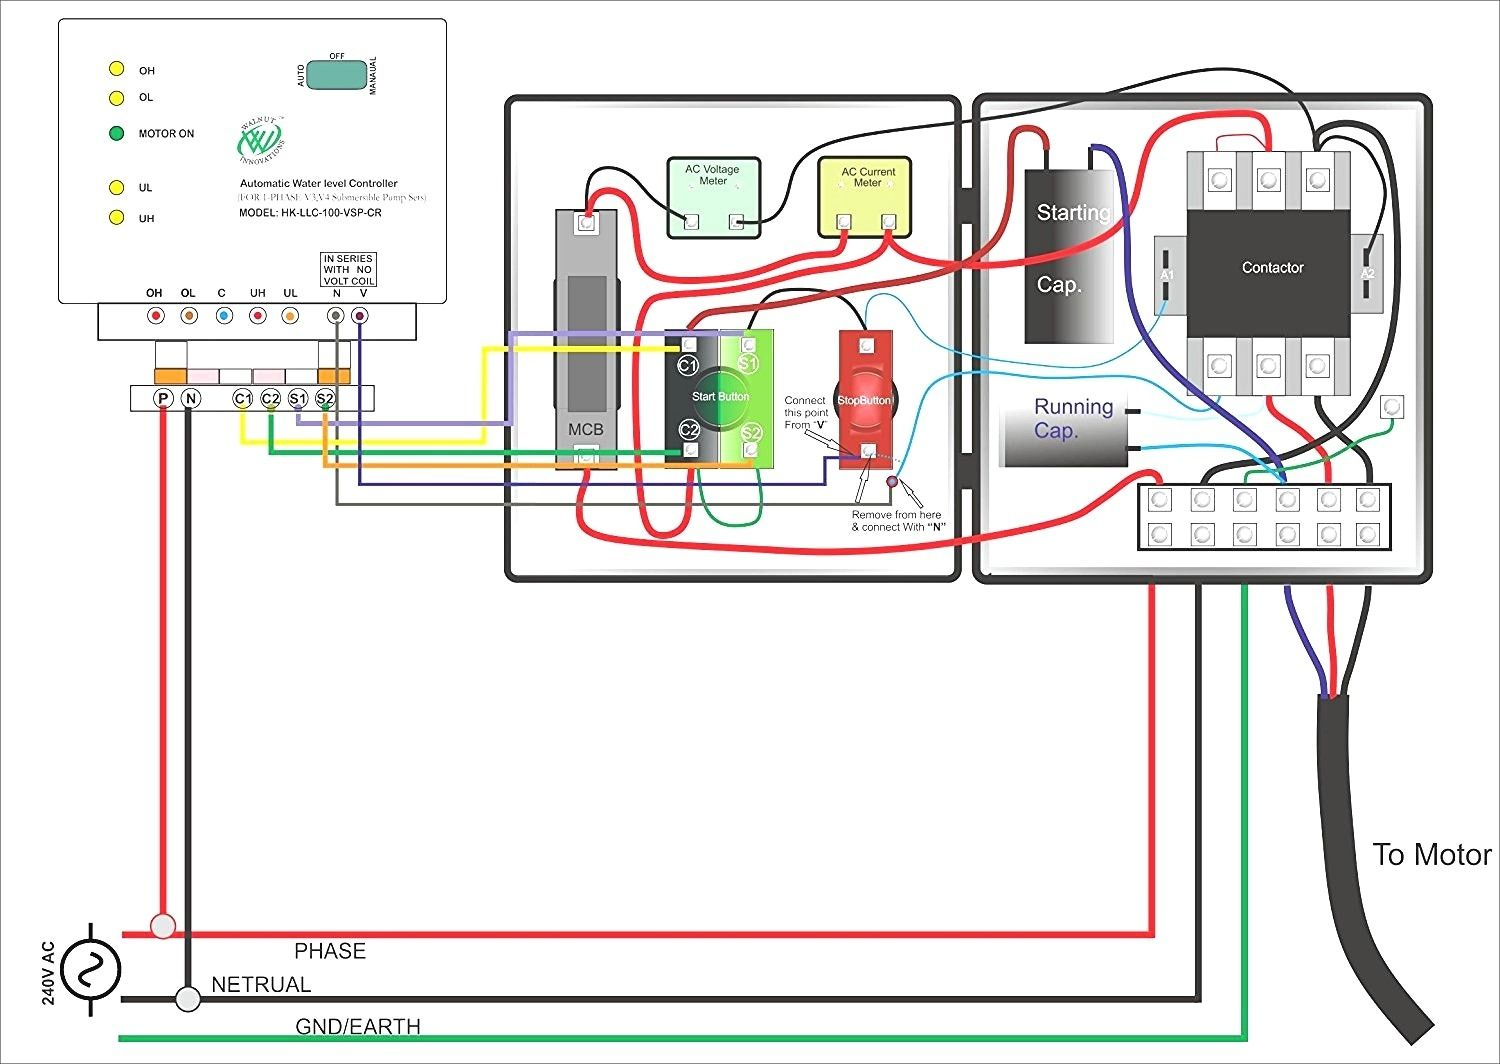 medium resolution of single phase submersible pump starter wiring diagram gooddy org best box diagram besides 3 phase electrical diagram symbols further 2009